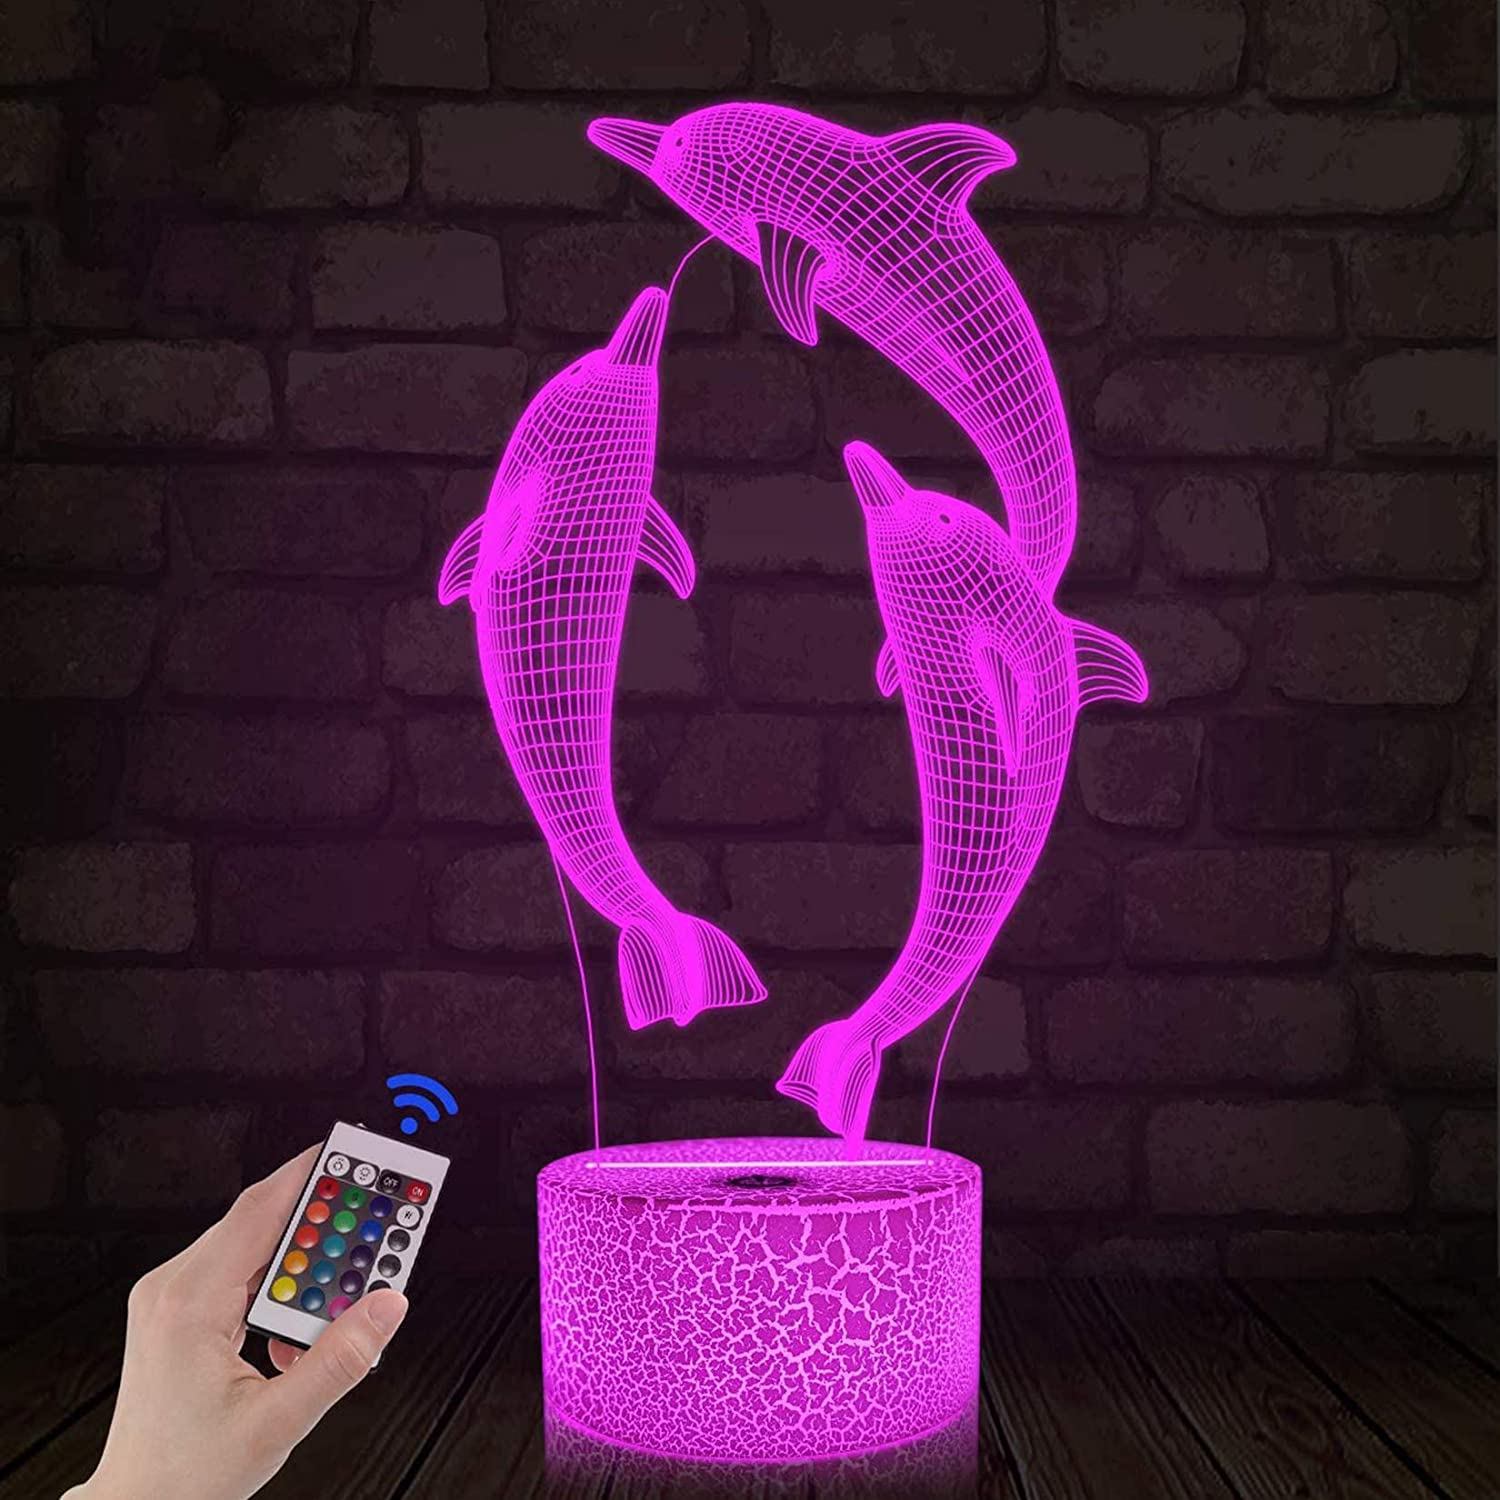 Night Light for Kids Dolphin 3D Night Light Porpoise Illusion Lamp with Remote Control 16 Color Changing Xmas Halloween Birthday Gift for Child Baby Girl